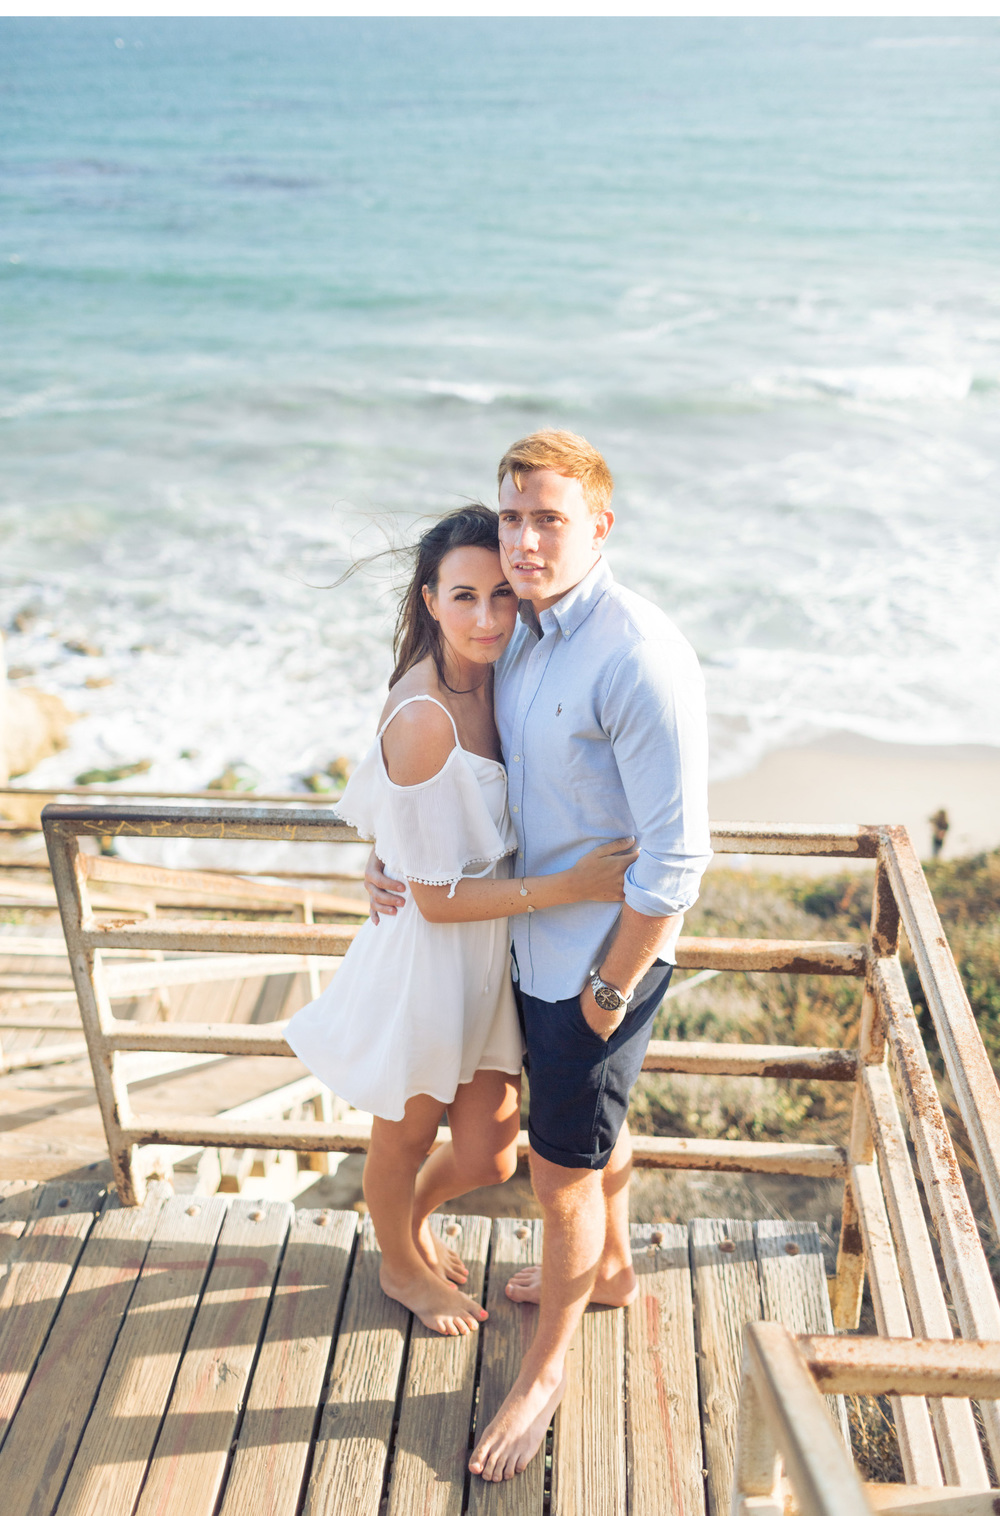 Big-Sur-Wedding-Photographer-Natalie-Schutt-Photography_12.jpg